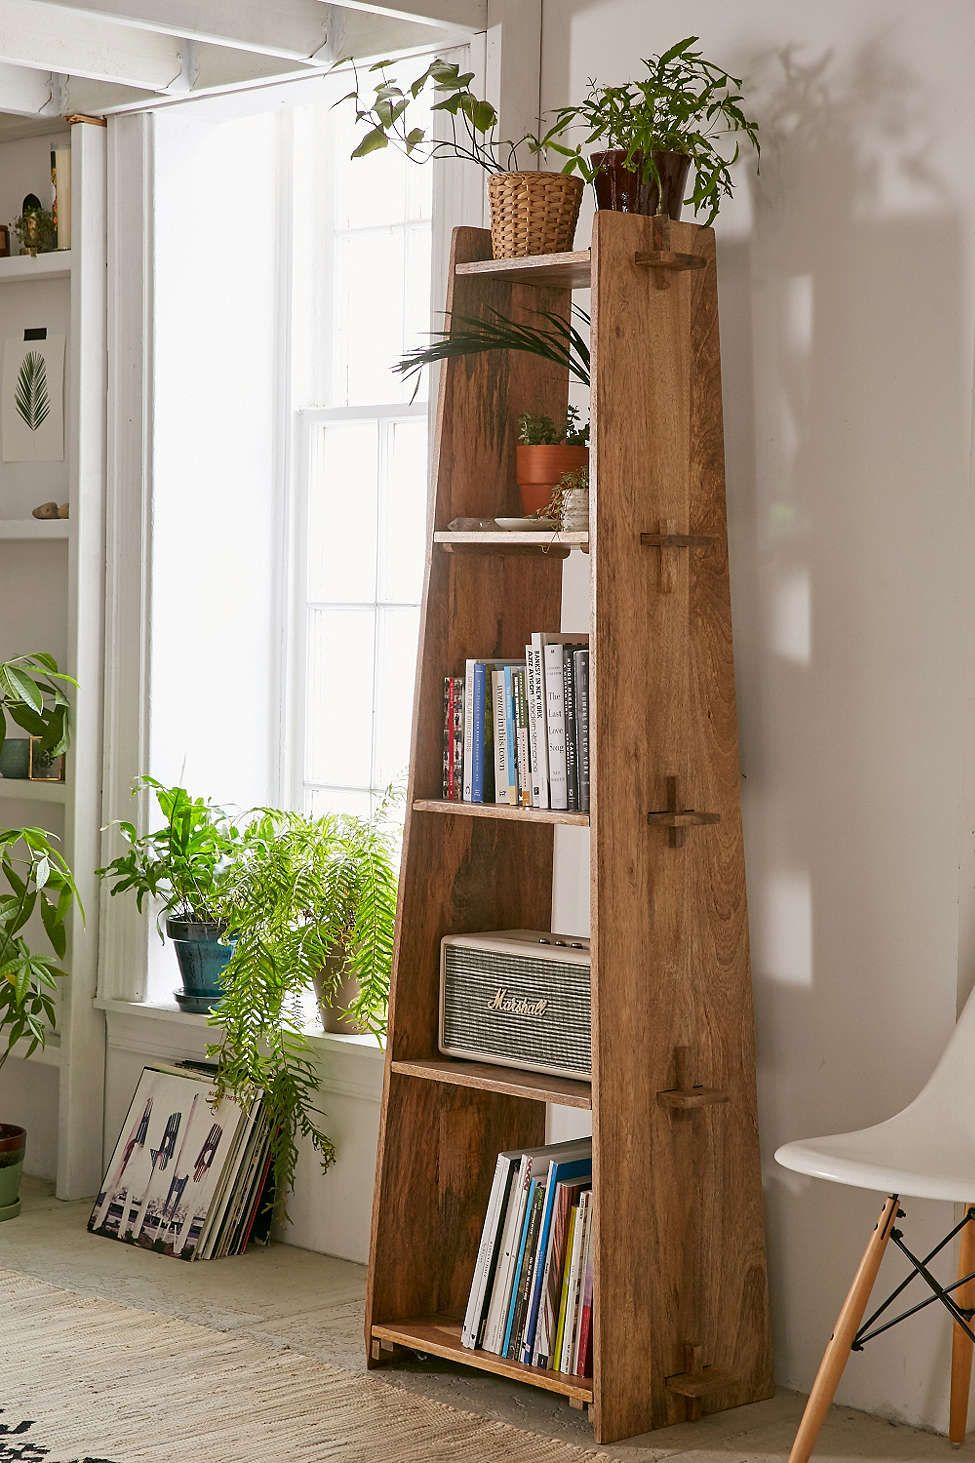 Lean and clean: A rustic wood shelf takes tusk-and-groove construction to a new level. Perfect as a bookcase of display shelf.